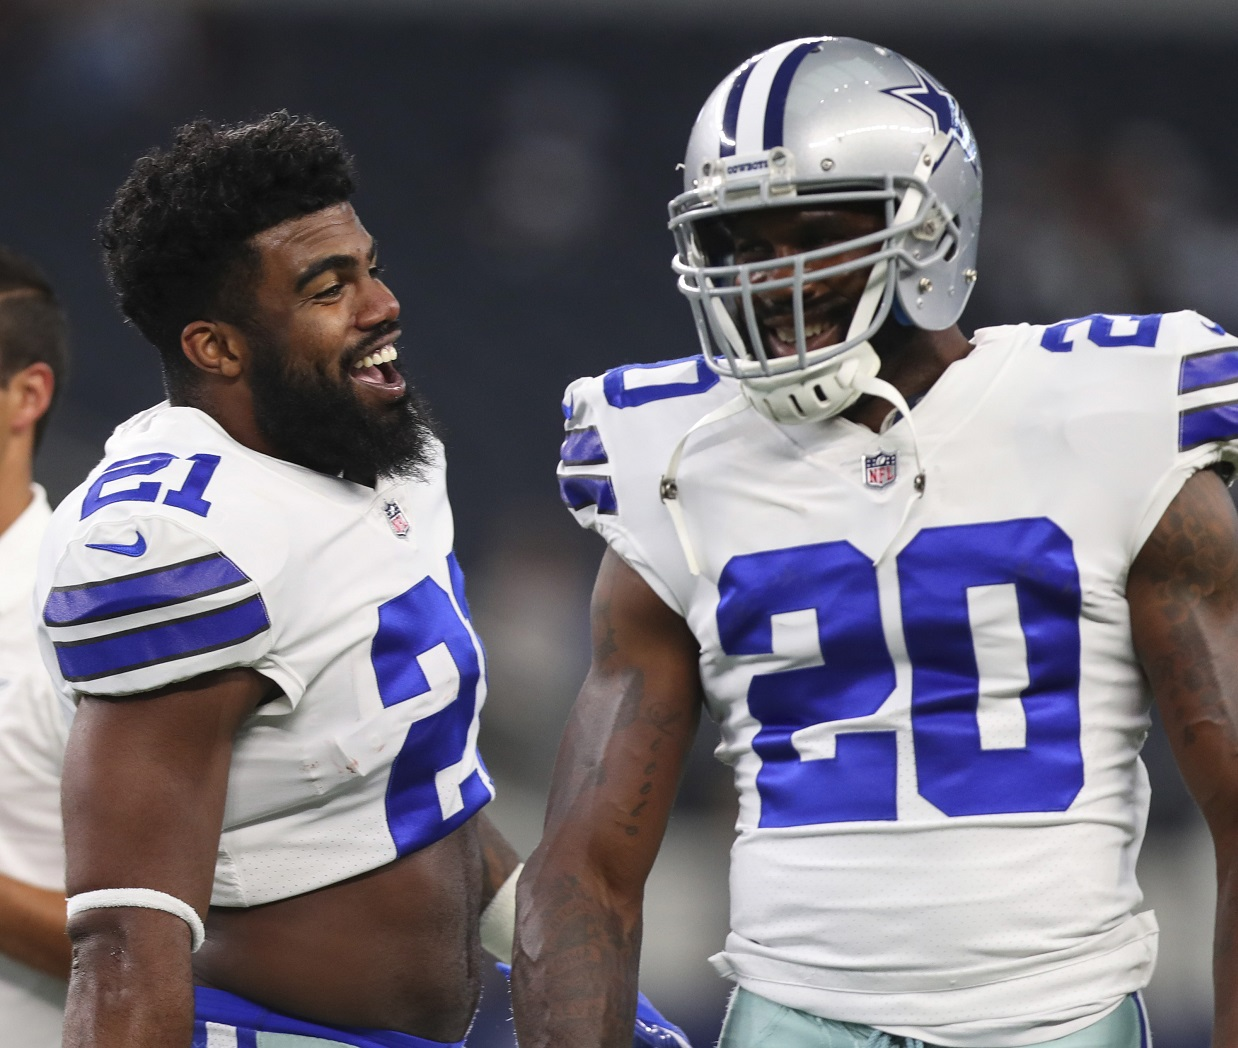 Ezekiel Elliott eligible to play for time being